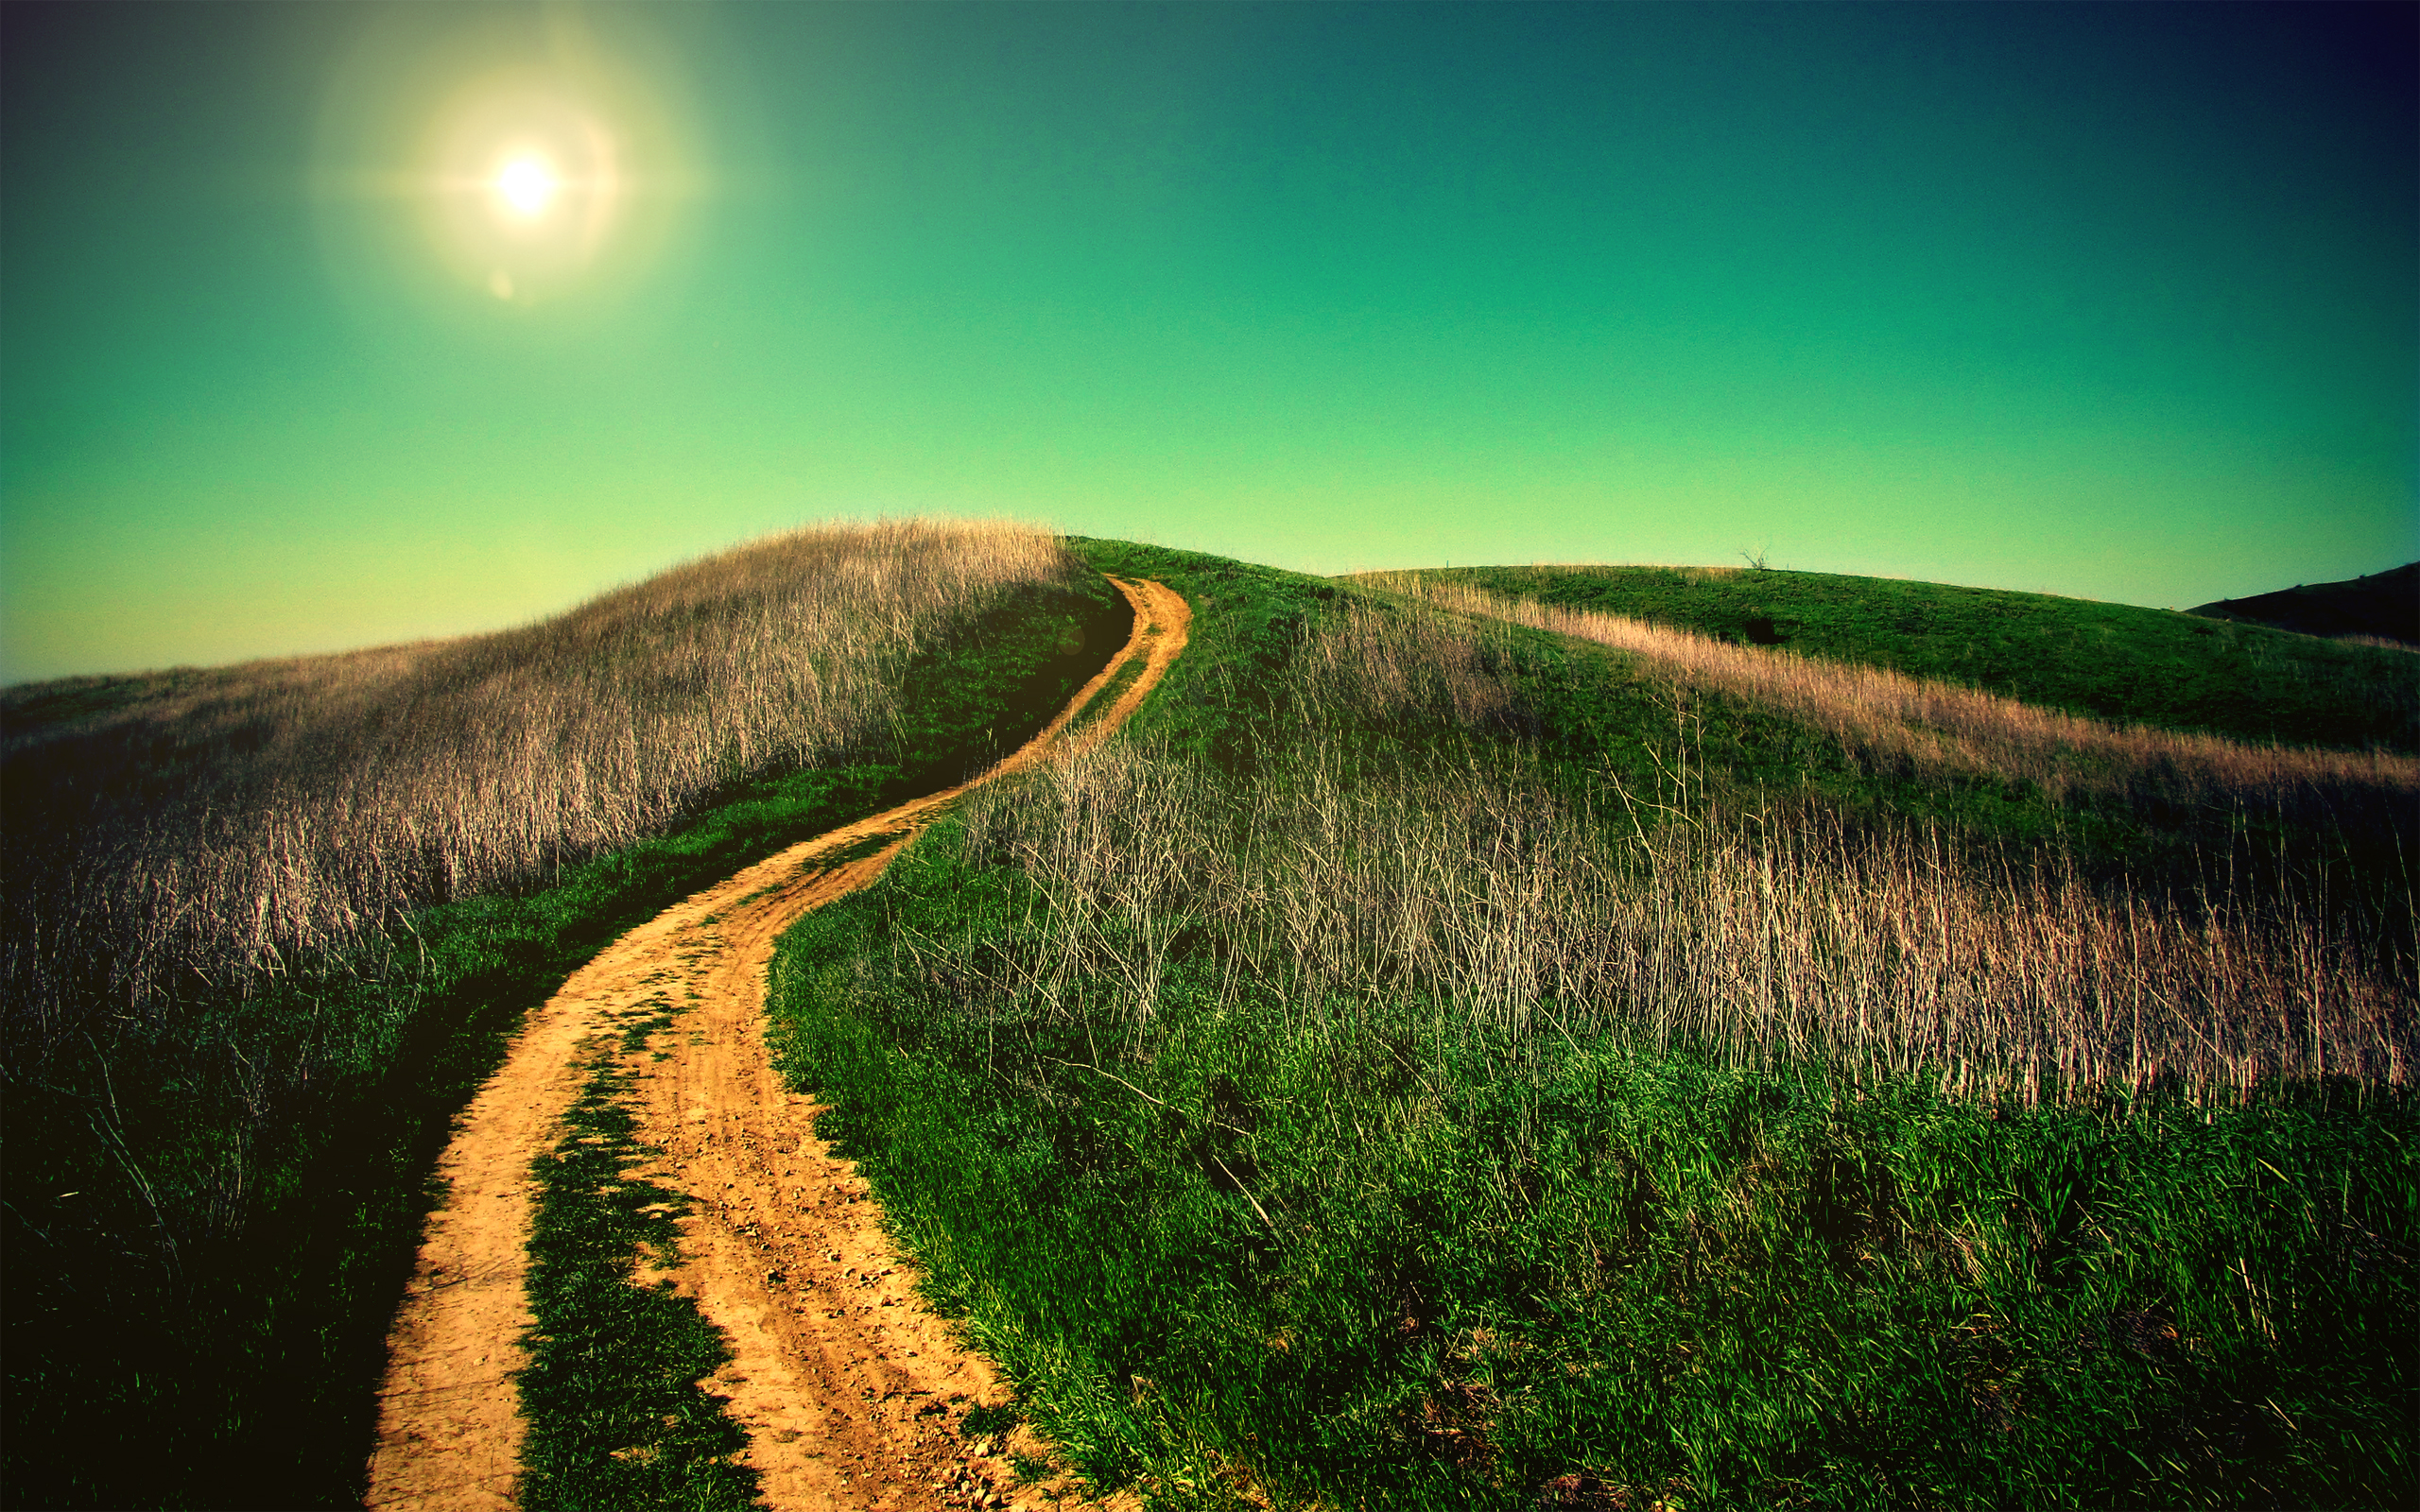 HD Wallpapers Uphill Road